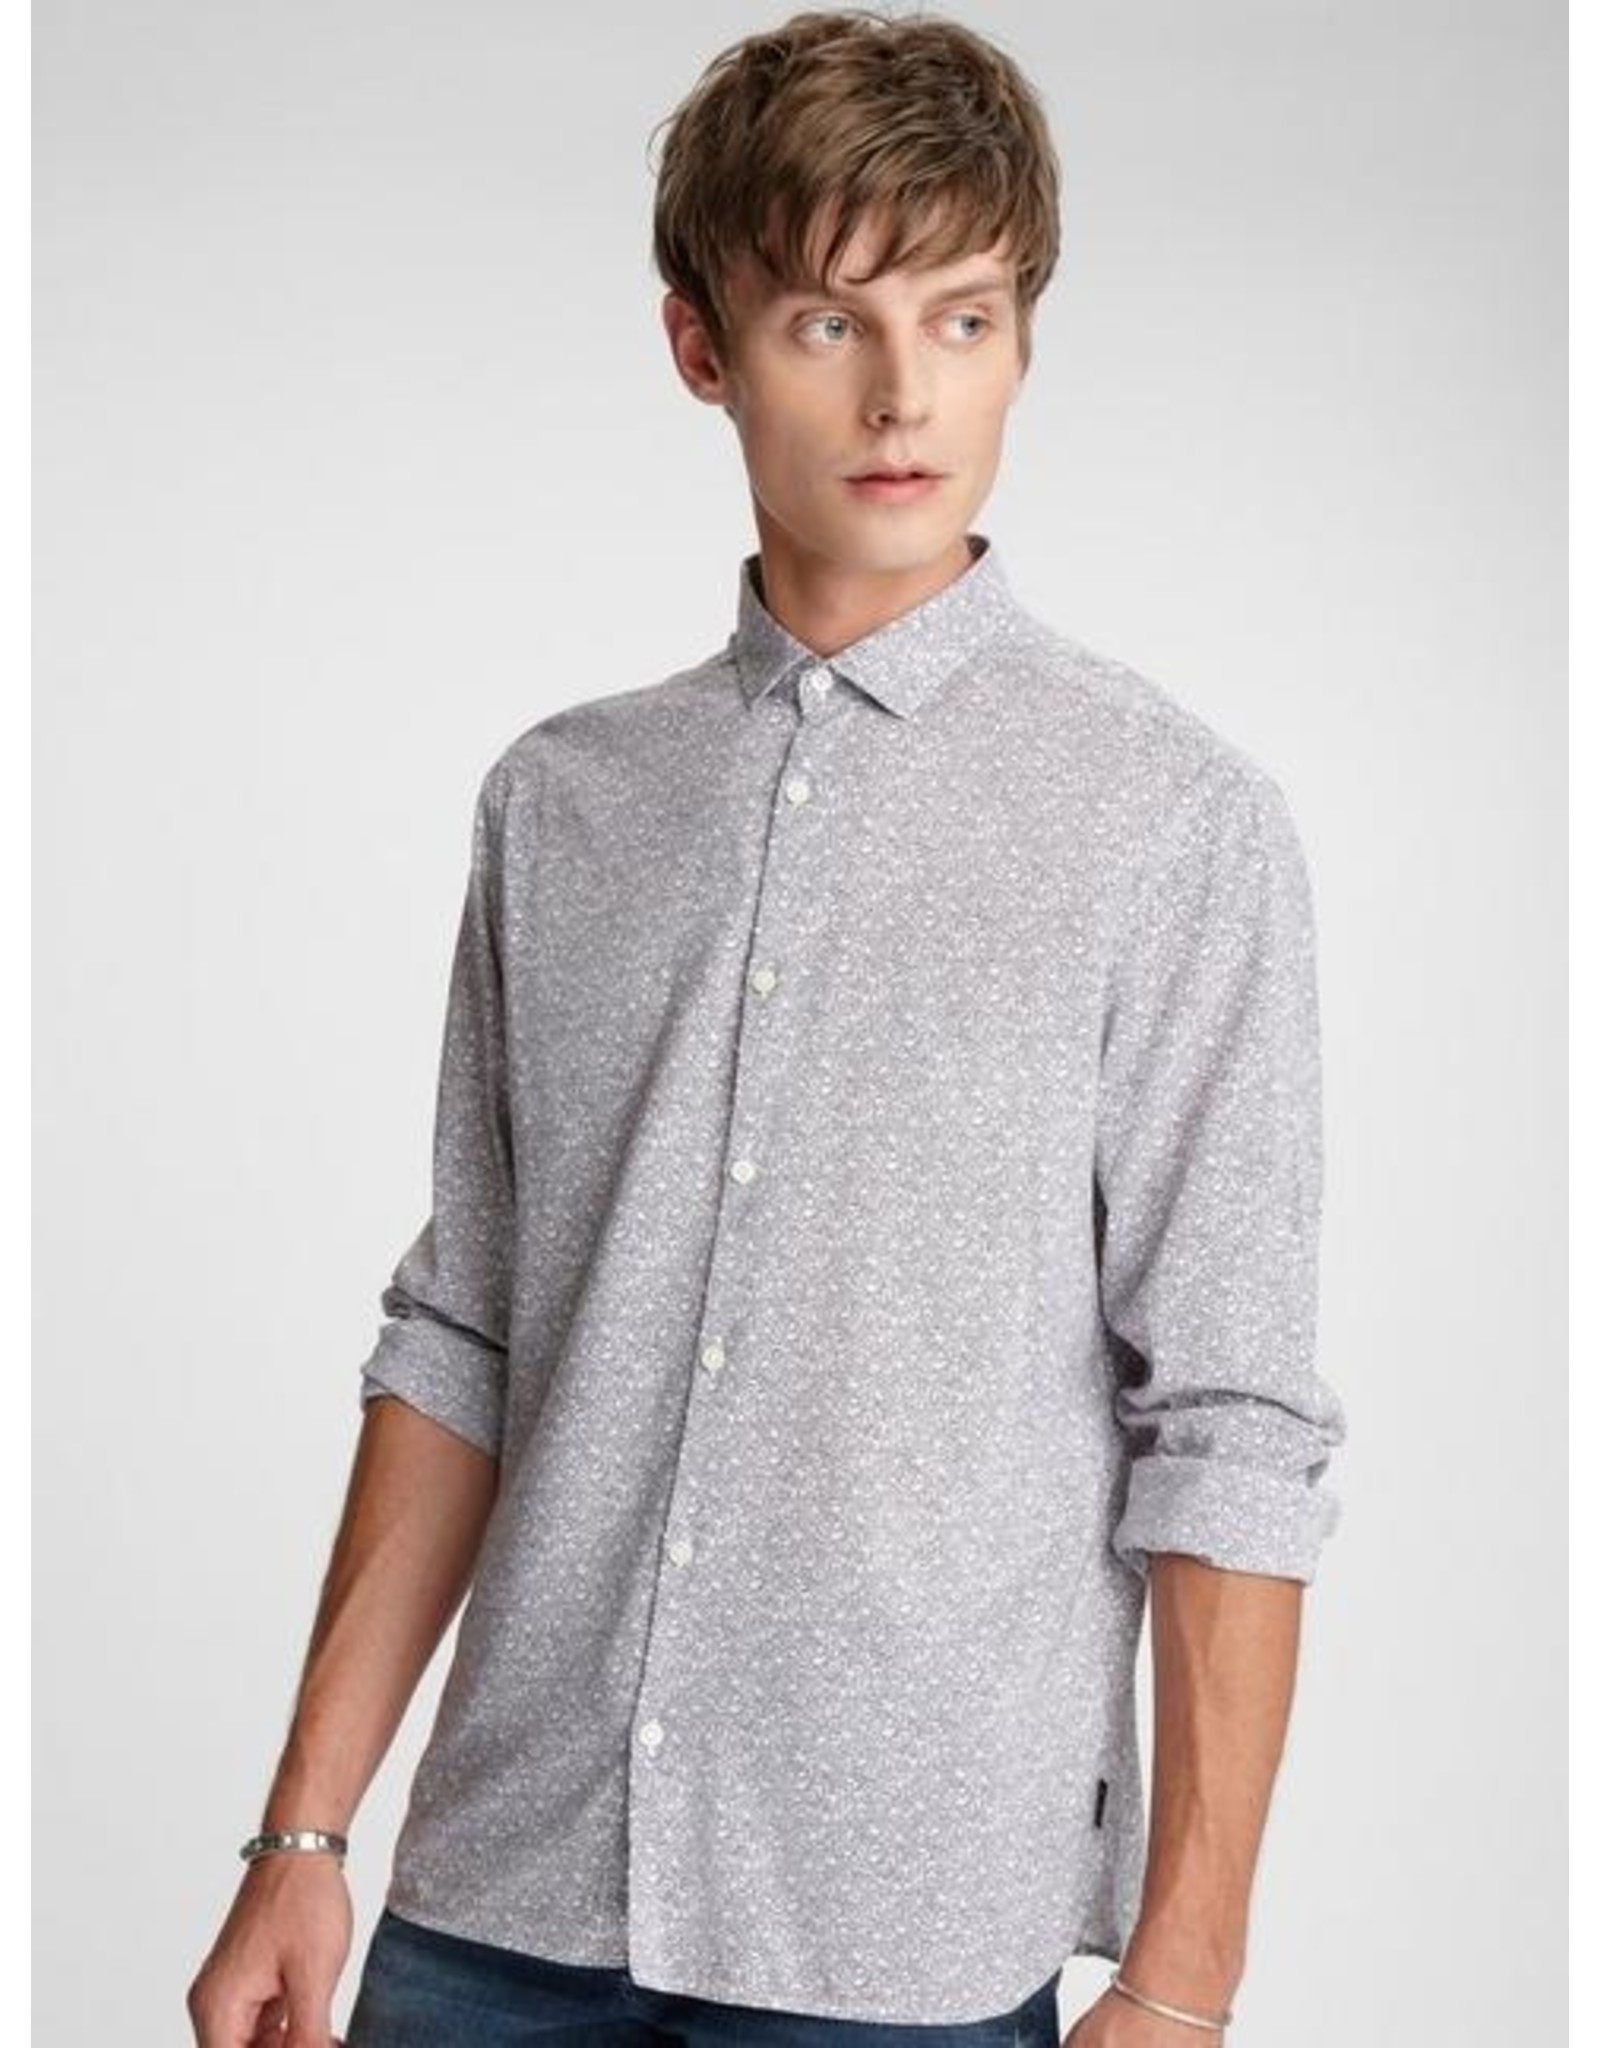 JOHN VARVATOS JOHN VARVATOS SOFT BUTTON UP SS20